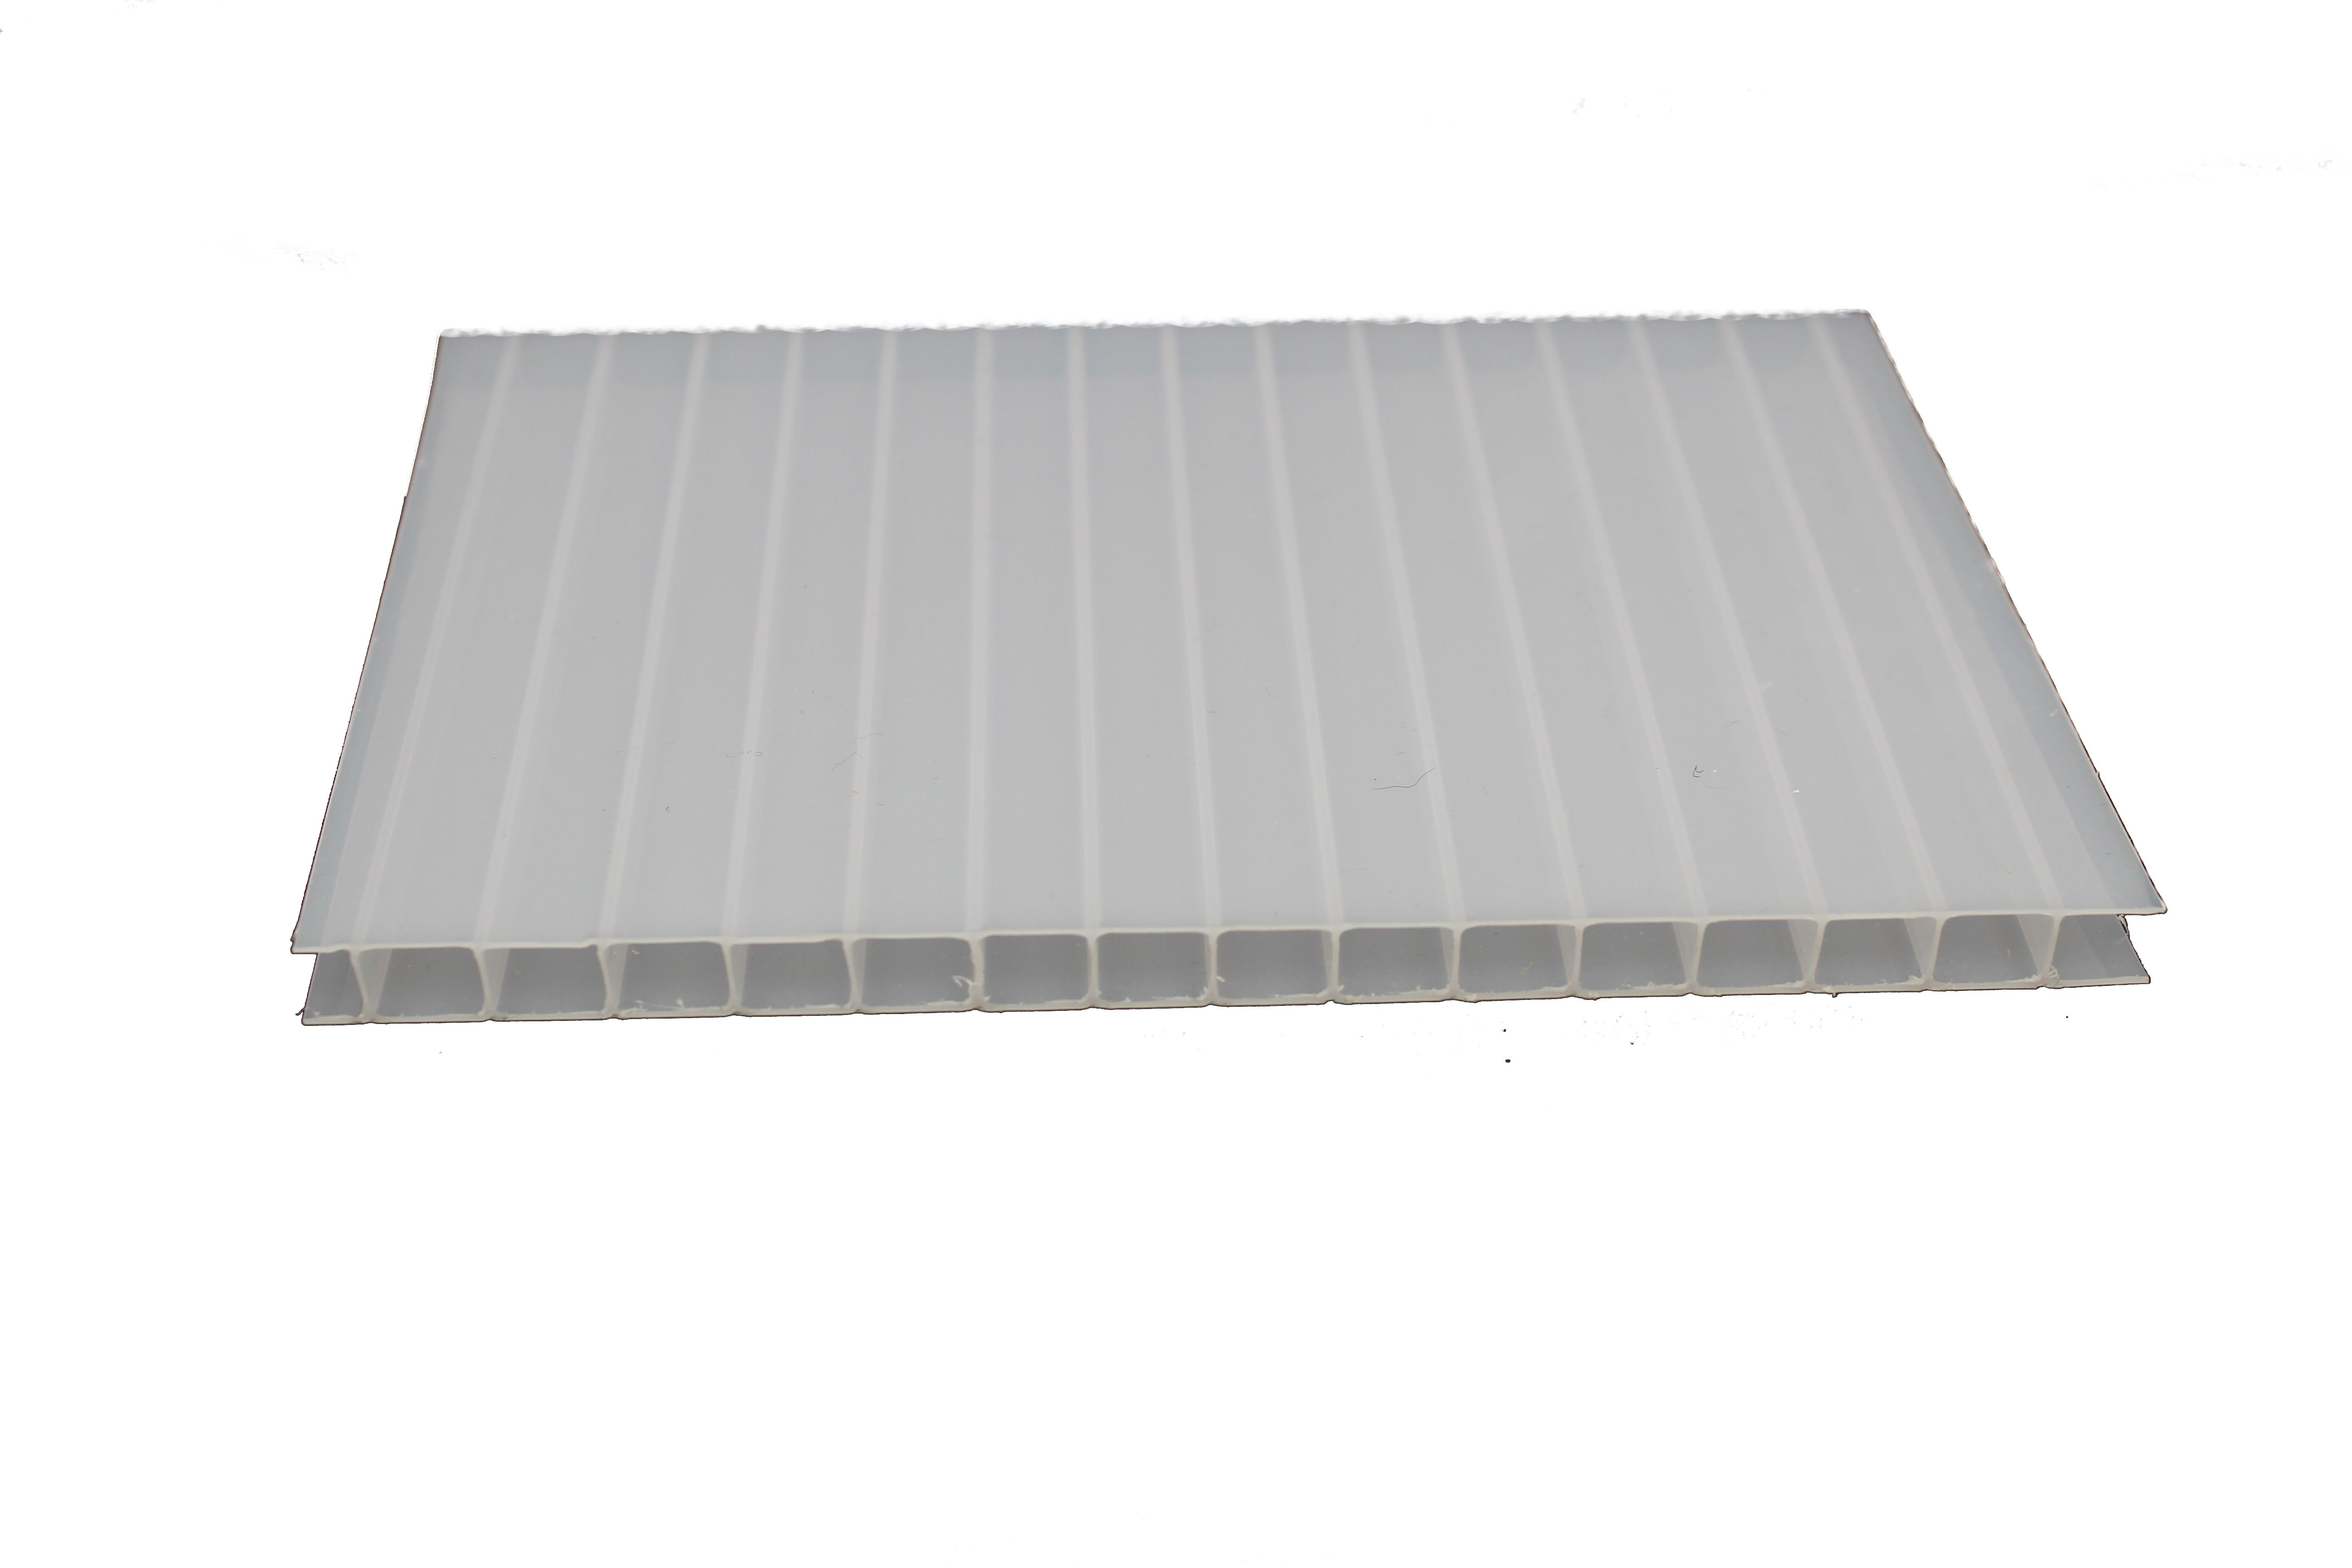 Multiwall Polycarbonate Sheets Are An Ideal Choice For Applications Such As Greenhouses Roofing Patio Covers Pergolas Sky Roof Panels Roofing Polycarbonate